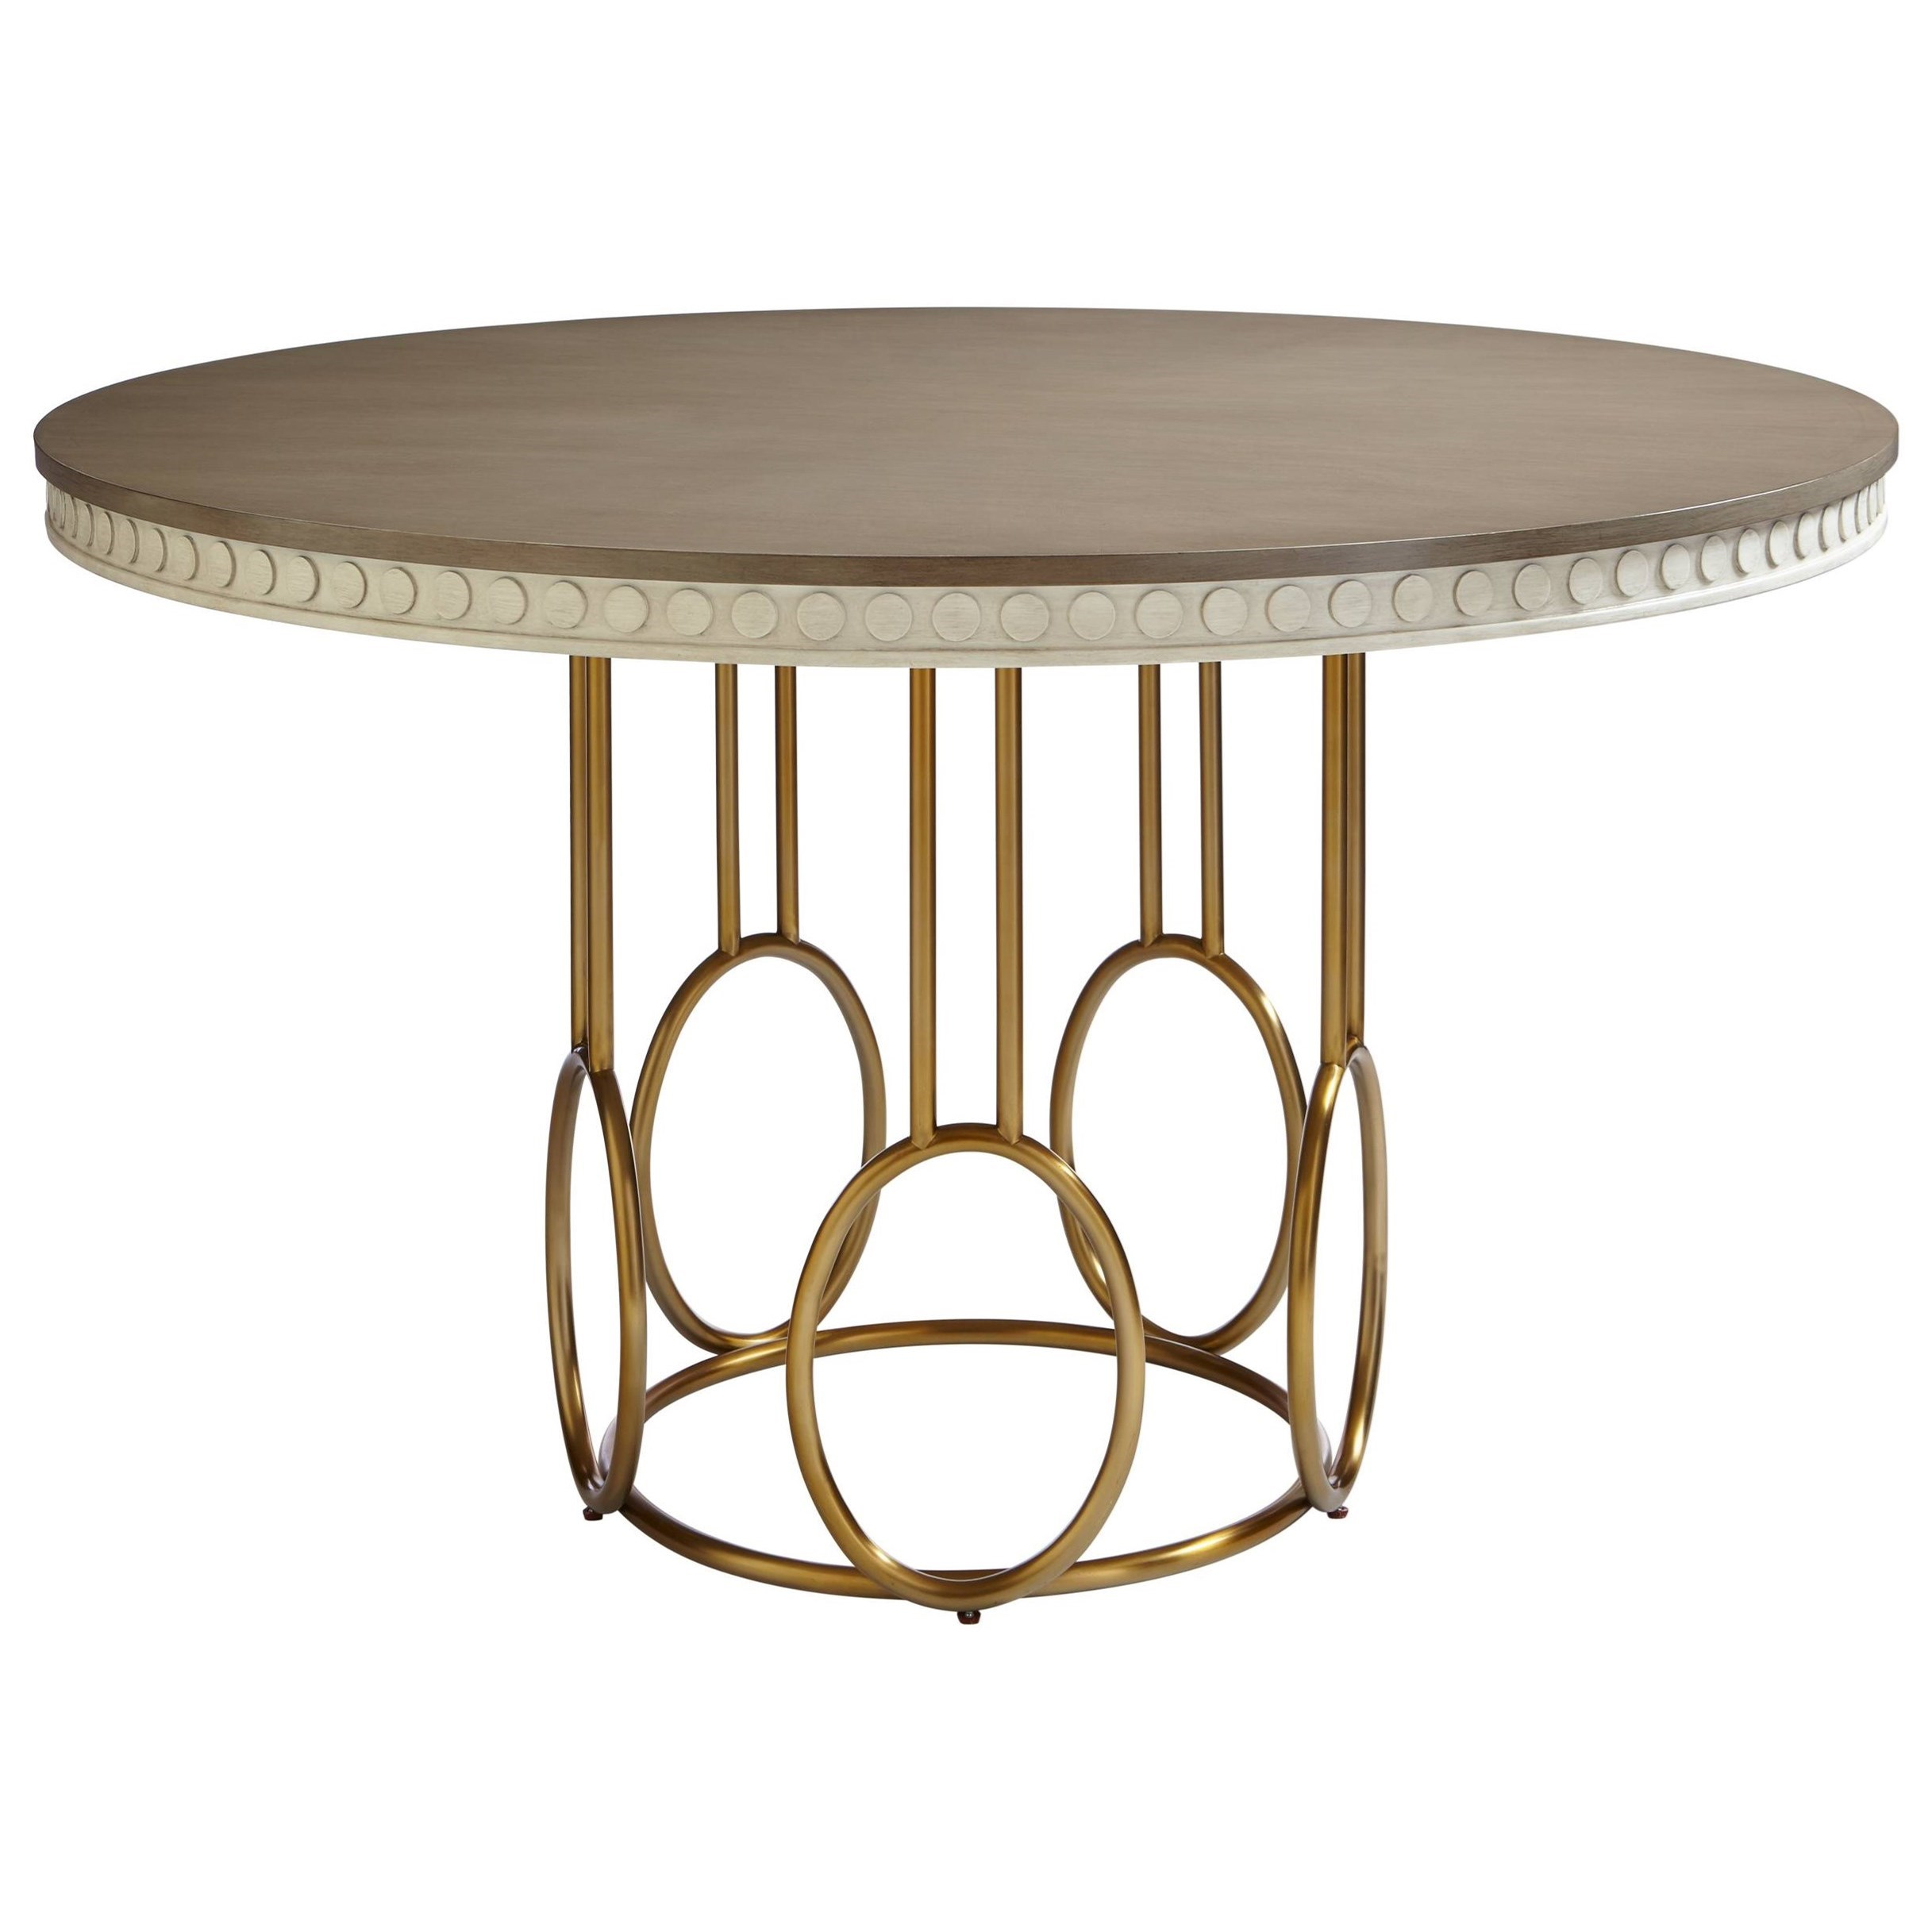 Stanley Furniture Coastal Living Oasis Venice Beach Round Dining Table - Item Number: 527-51-30